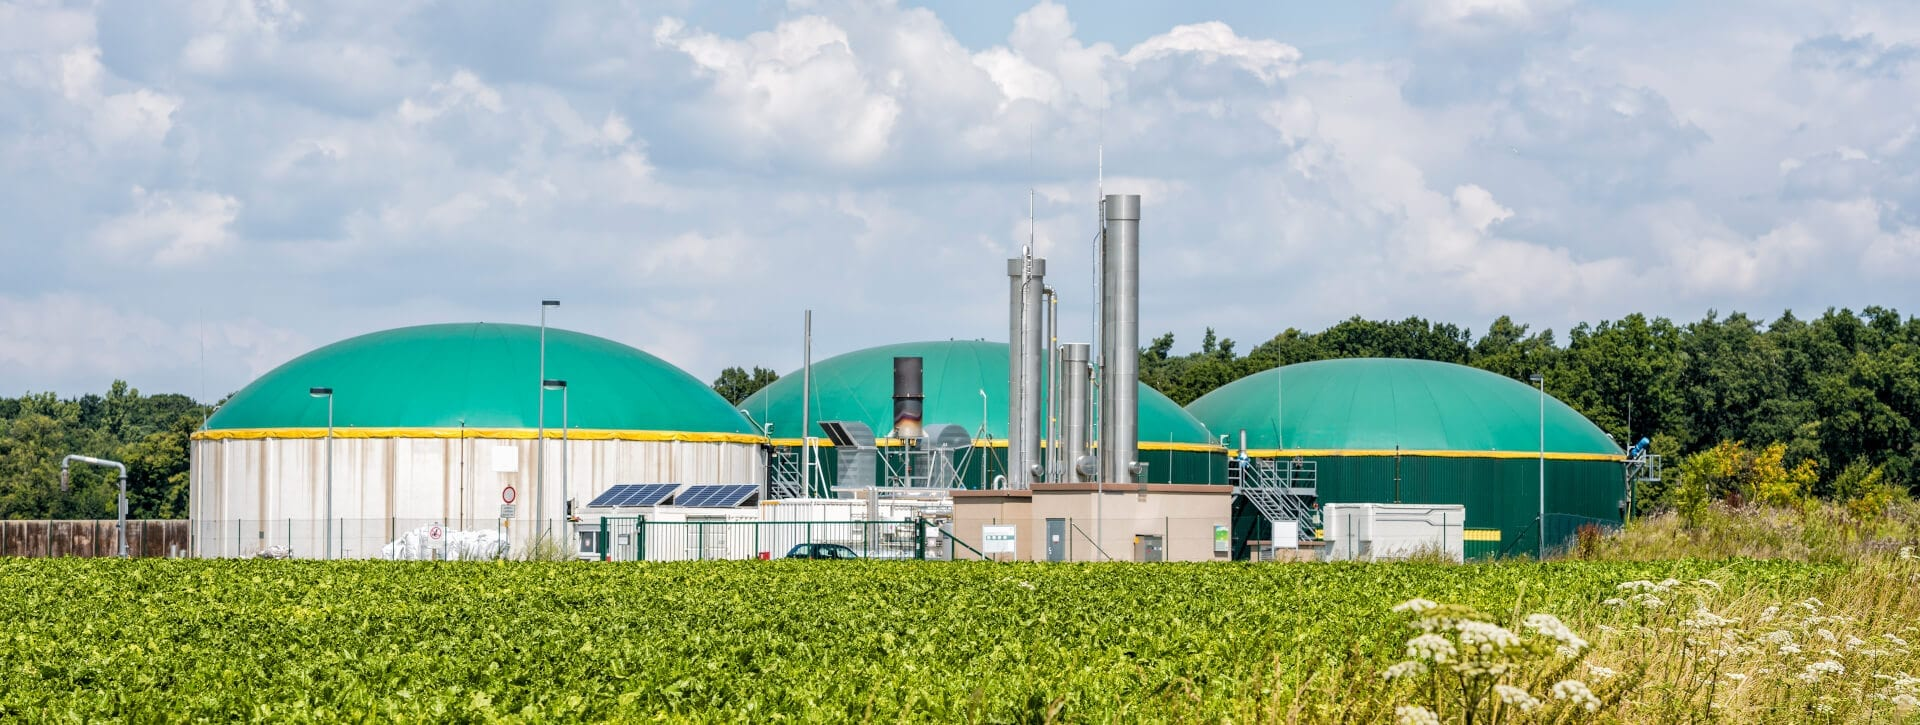 Skyline Energy - Biogas